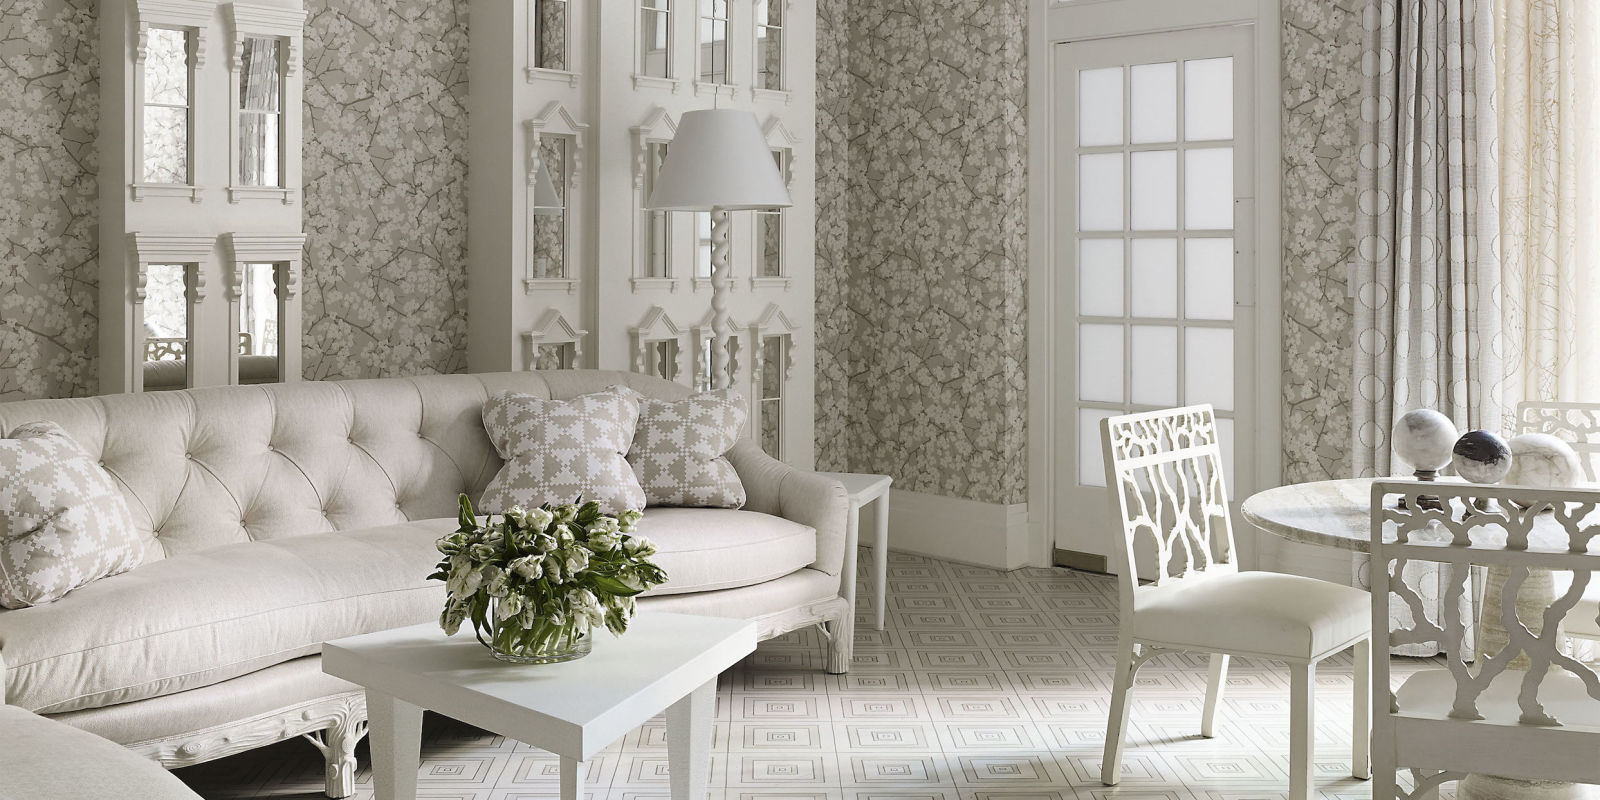 20 White Living Room Furniture Ideas - White Chairs and ...